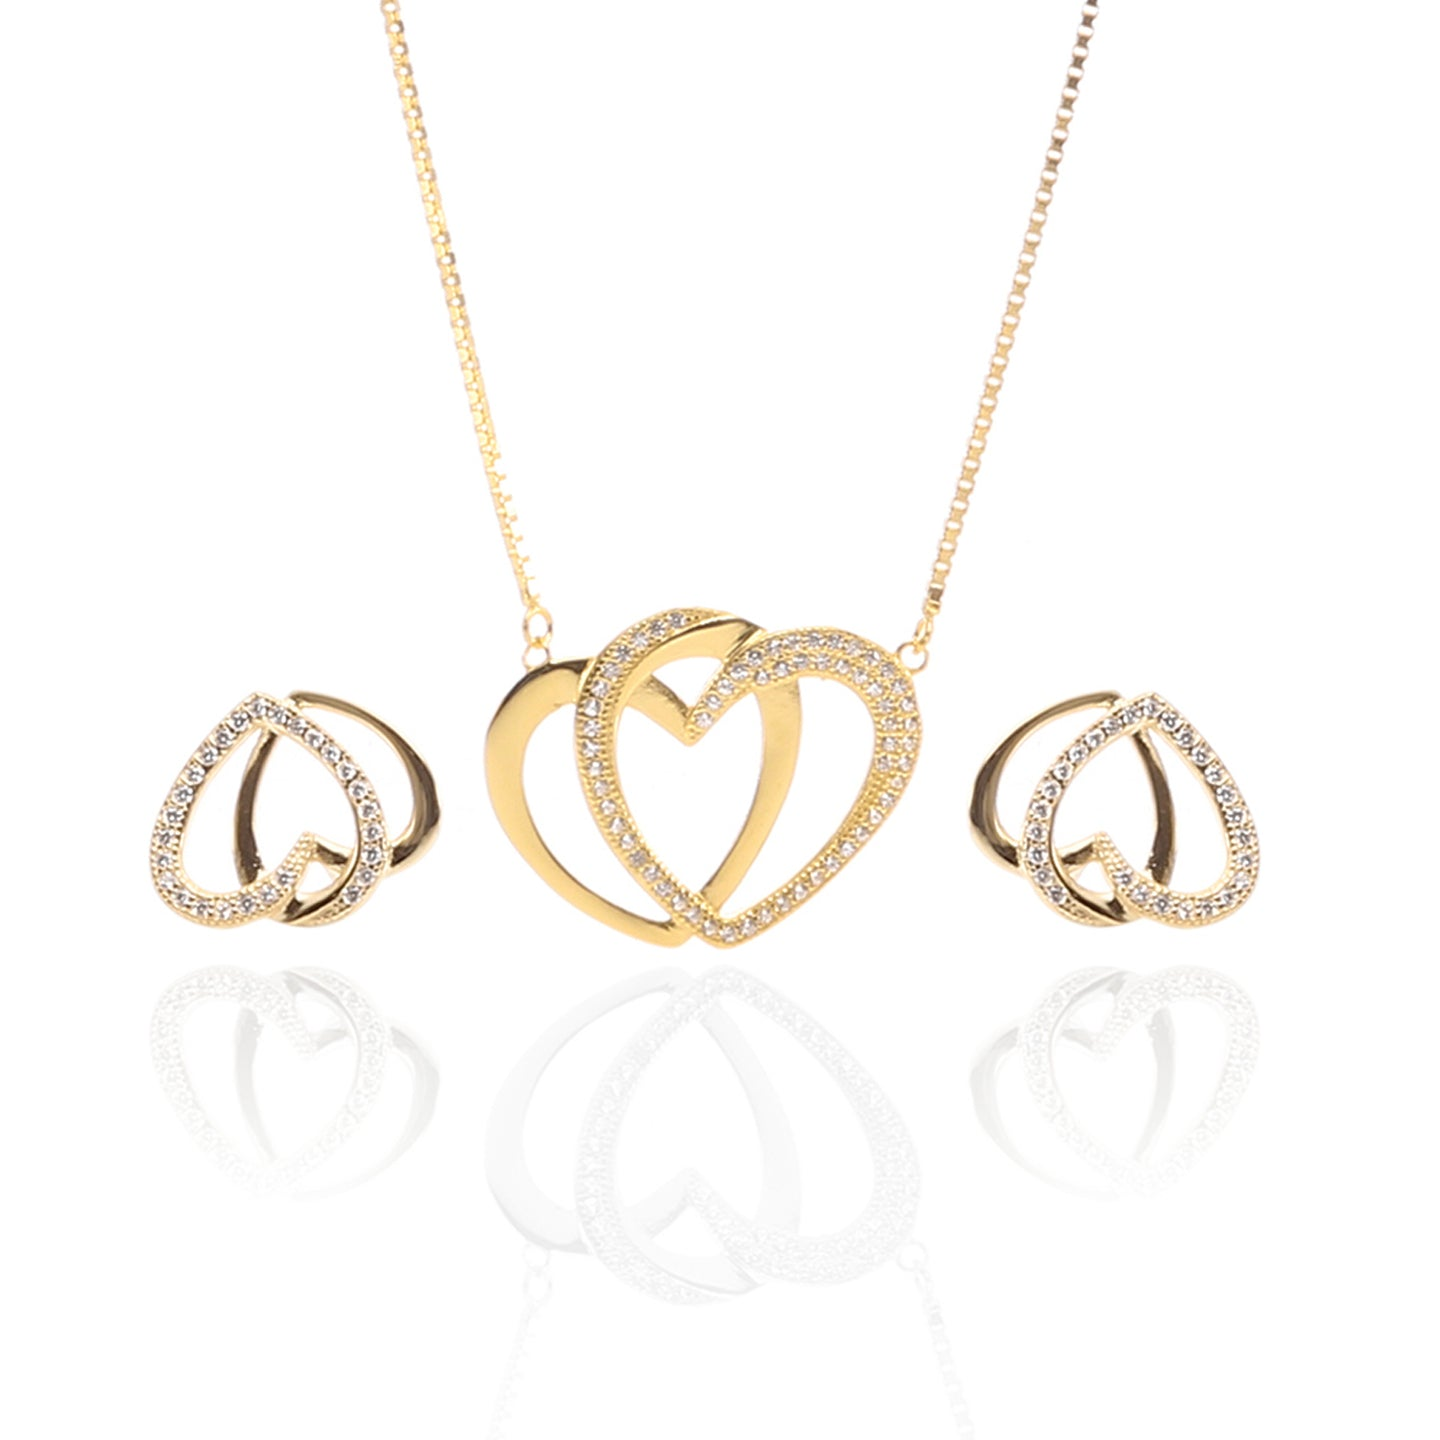 Interlocking Hearts Pendant Necklace and Earrings Set - ARJW1025GD - ARCADIO LIFESTYLE